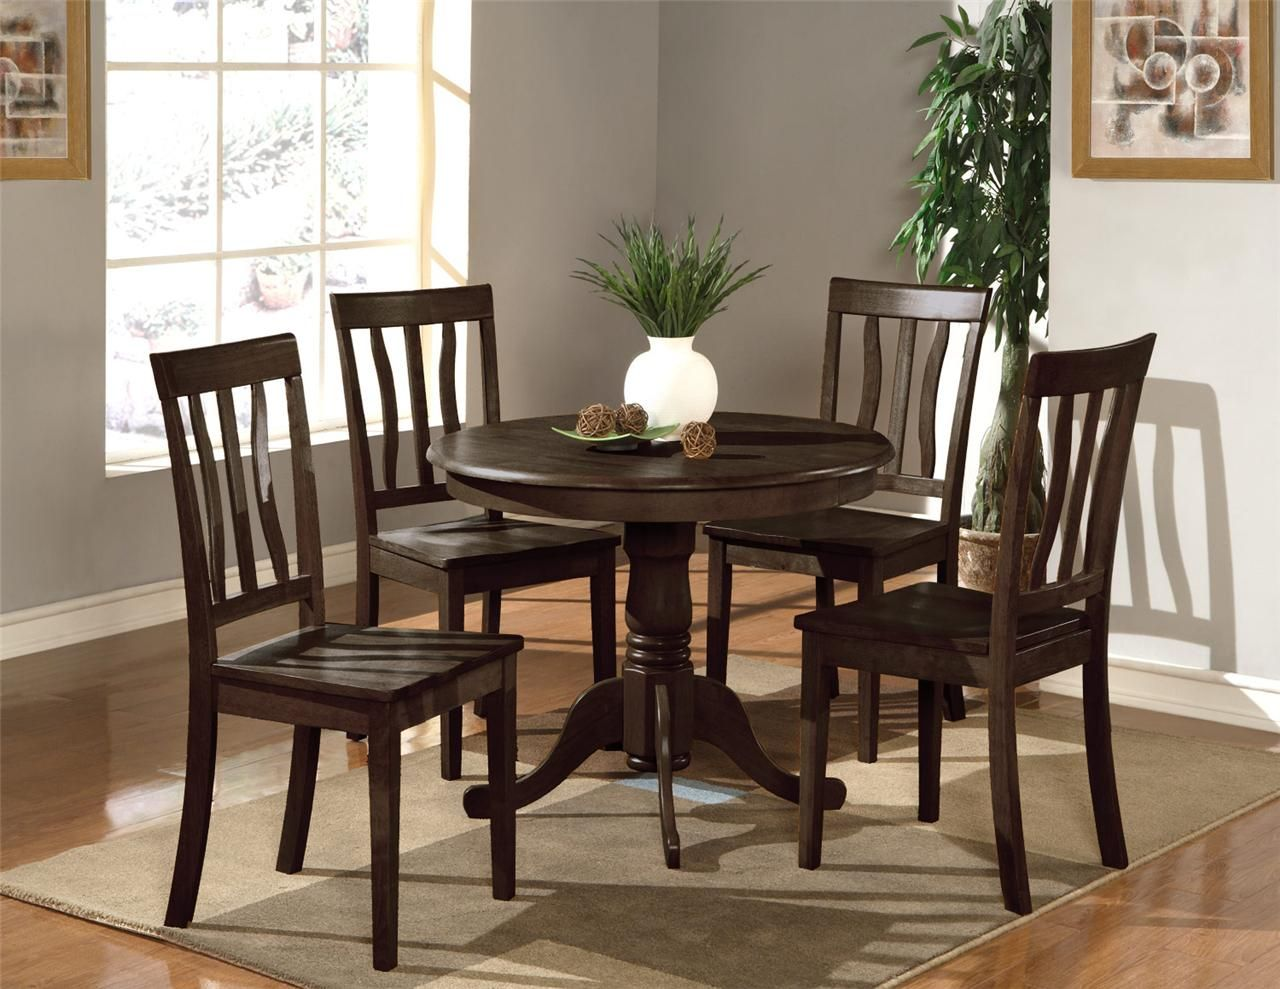 Round dining table and chairs for 4  PC DINETTE KITCHEN SET quot ROUND TABLE WITH  WOOD SEAT